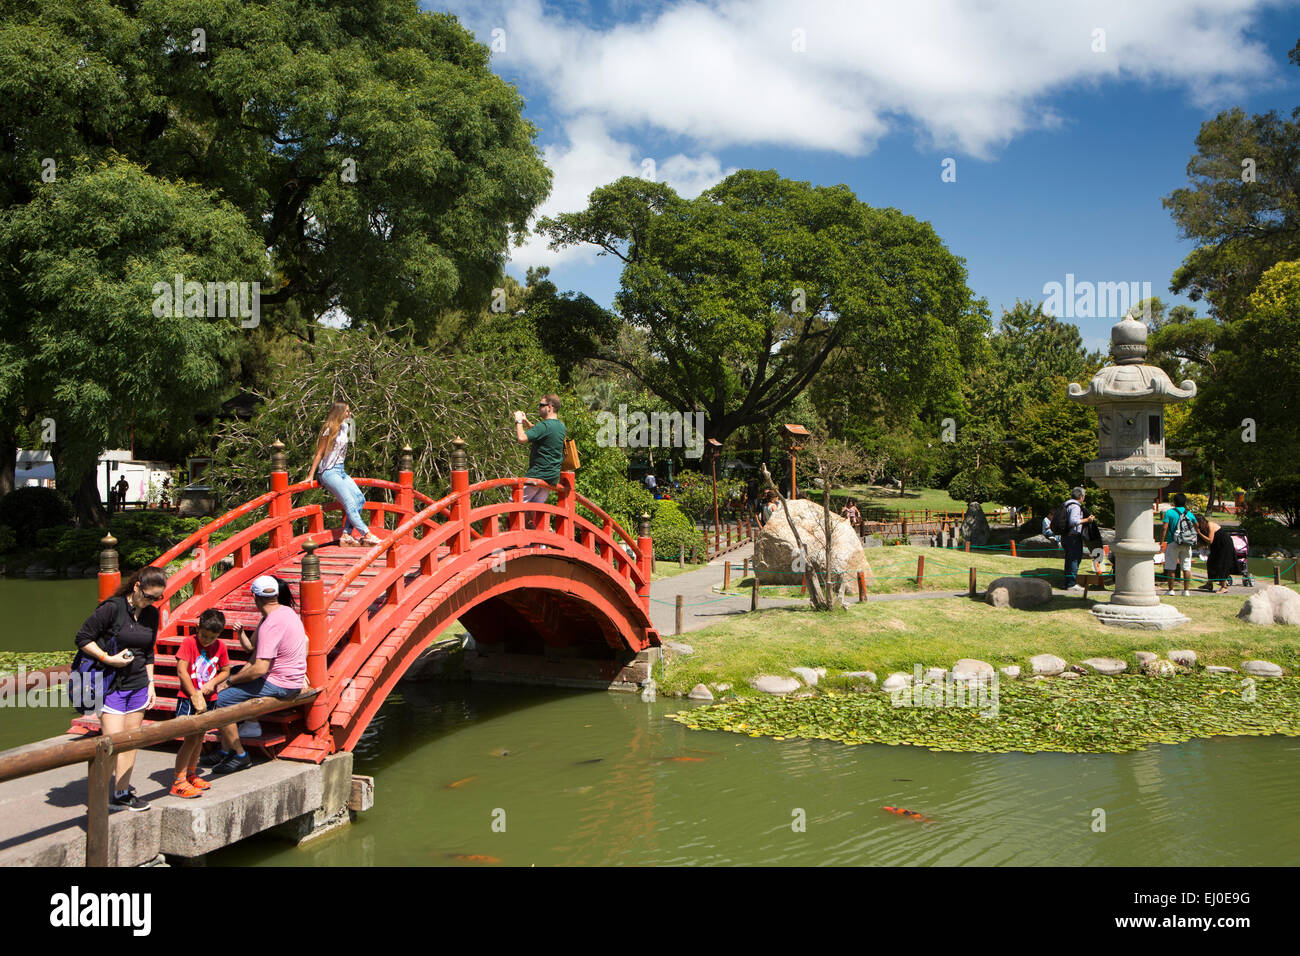 argentina buenos aires retiro japanese garden jardin japones visitors on red arched bridge